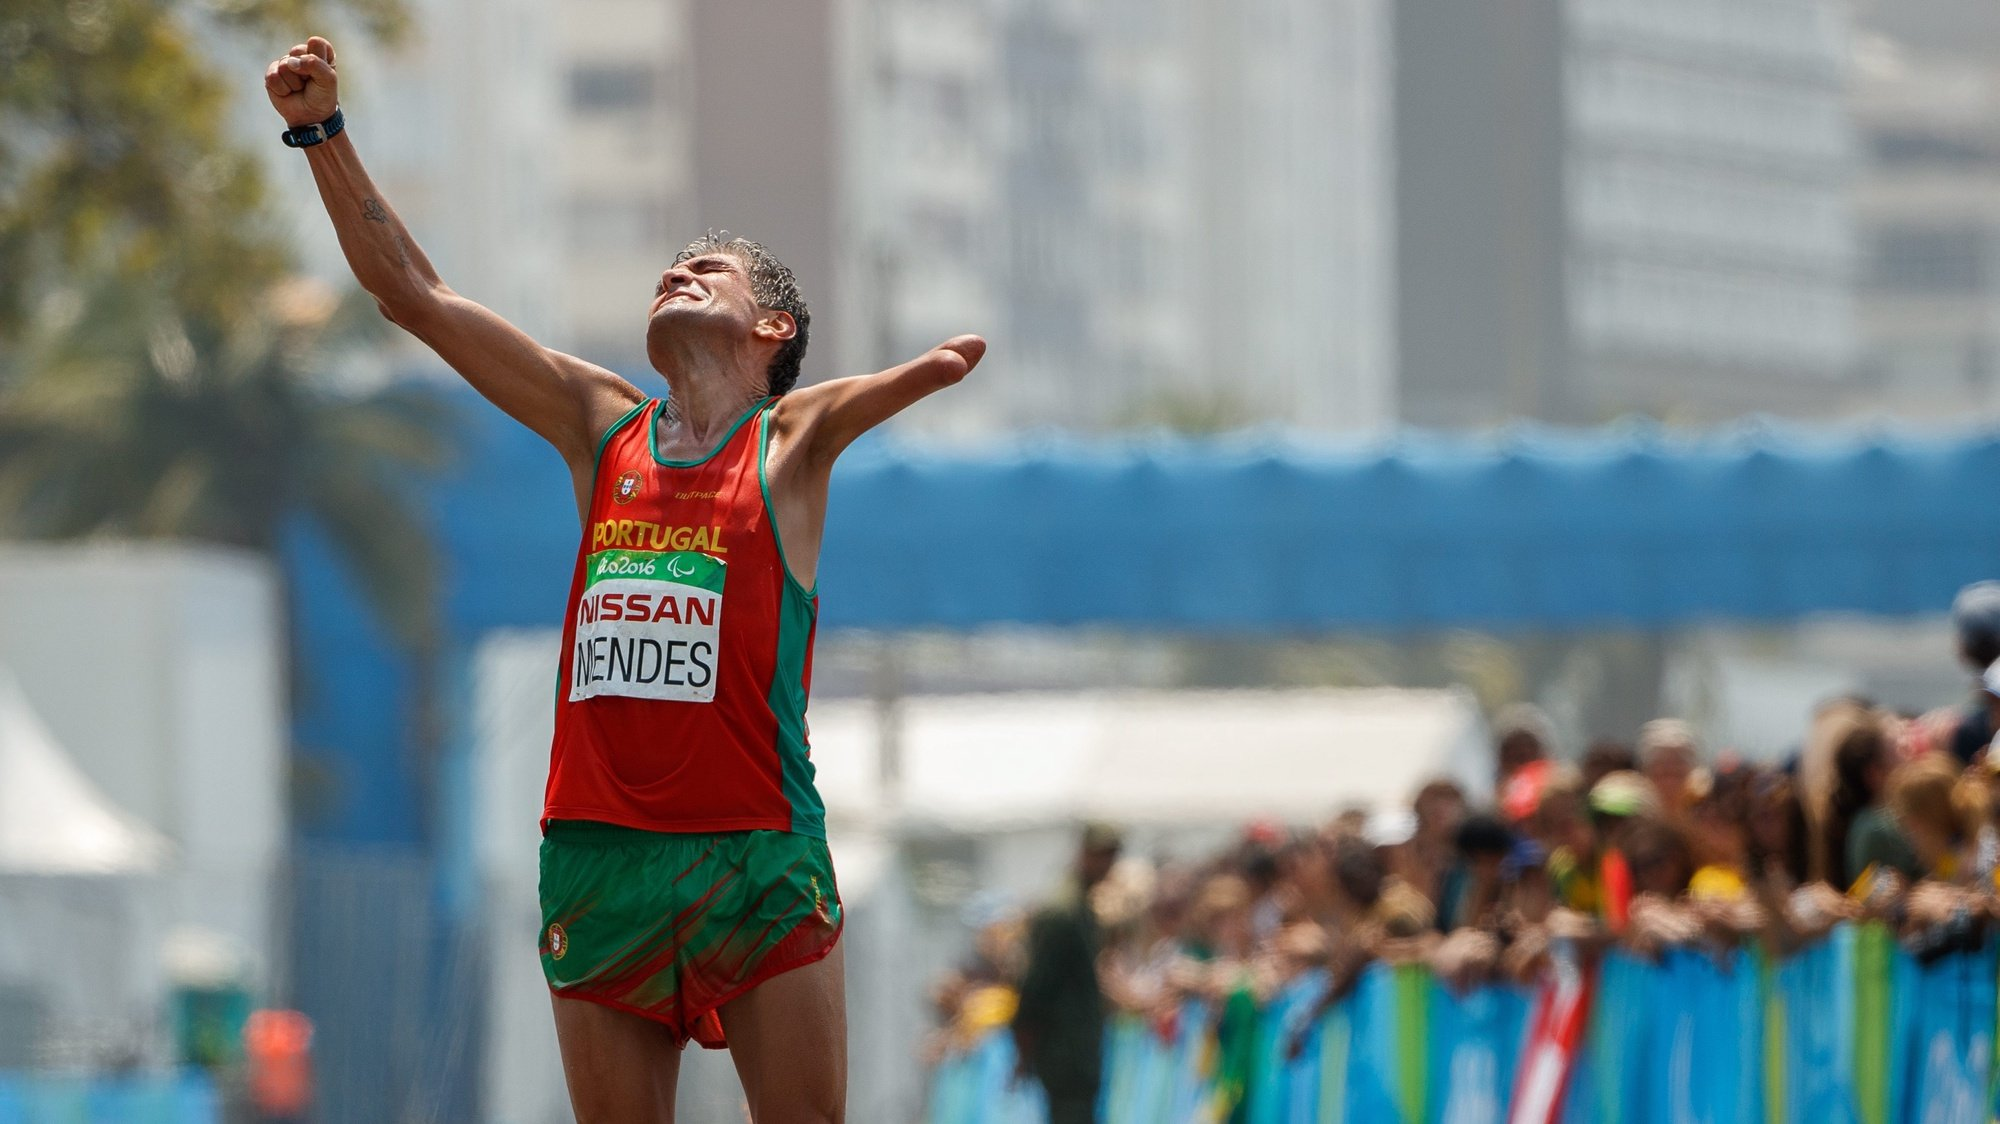 epa05546482 Manuel Mendes of Portugal finishes with a Bronze Medal in the Men's T46 Marathon during the Rio 2016 Paralympic Games, at Fort Copacabana in Rio de Janeiro, Brazil, 18 September 2016.  EPA/AL TIELEMANS for OIS/IOC  HANDOUT EDITORIAL USE ONLY/NO SALES